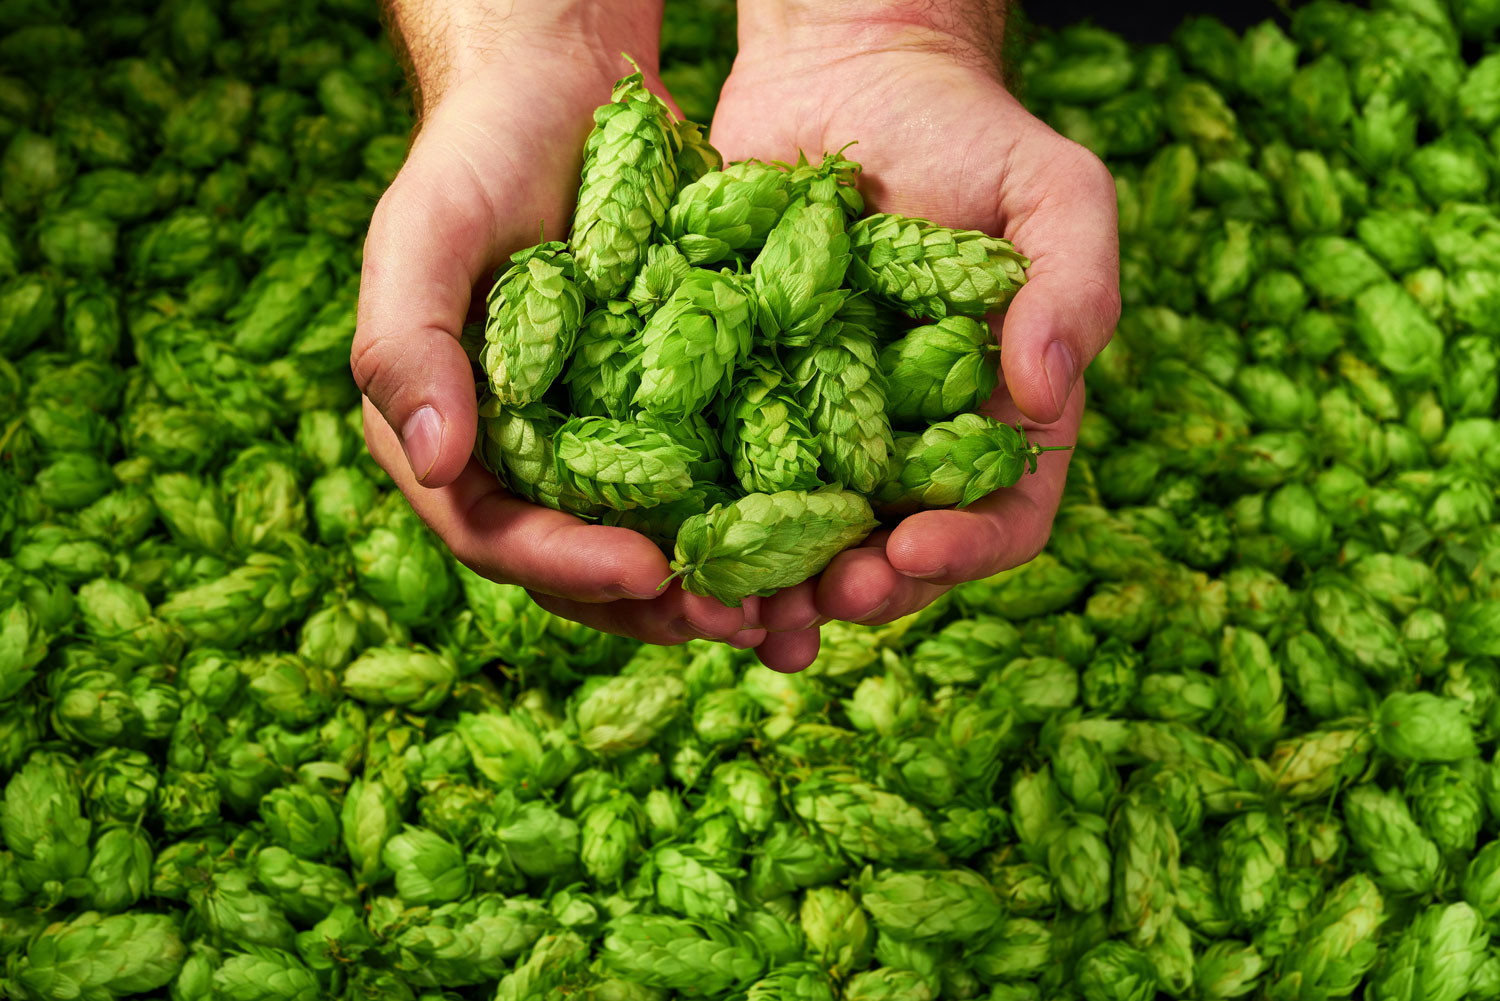 LAND-JOURNAL-Blog-Awareness-Beer-Hops-Brewing-A-New-Alternative-Crop-for-Florida's-Farmers--2019